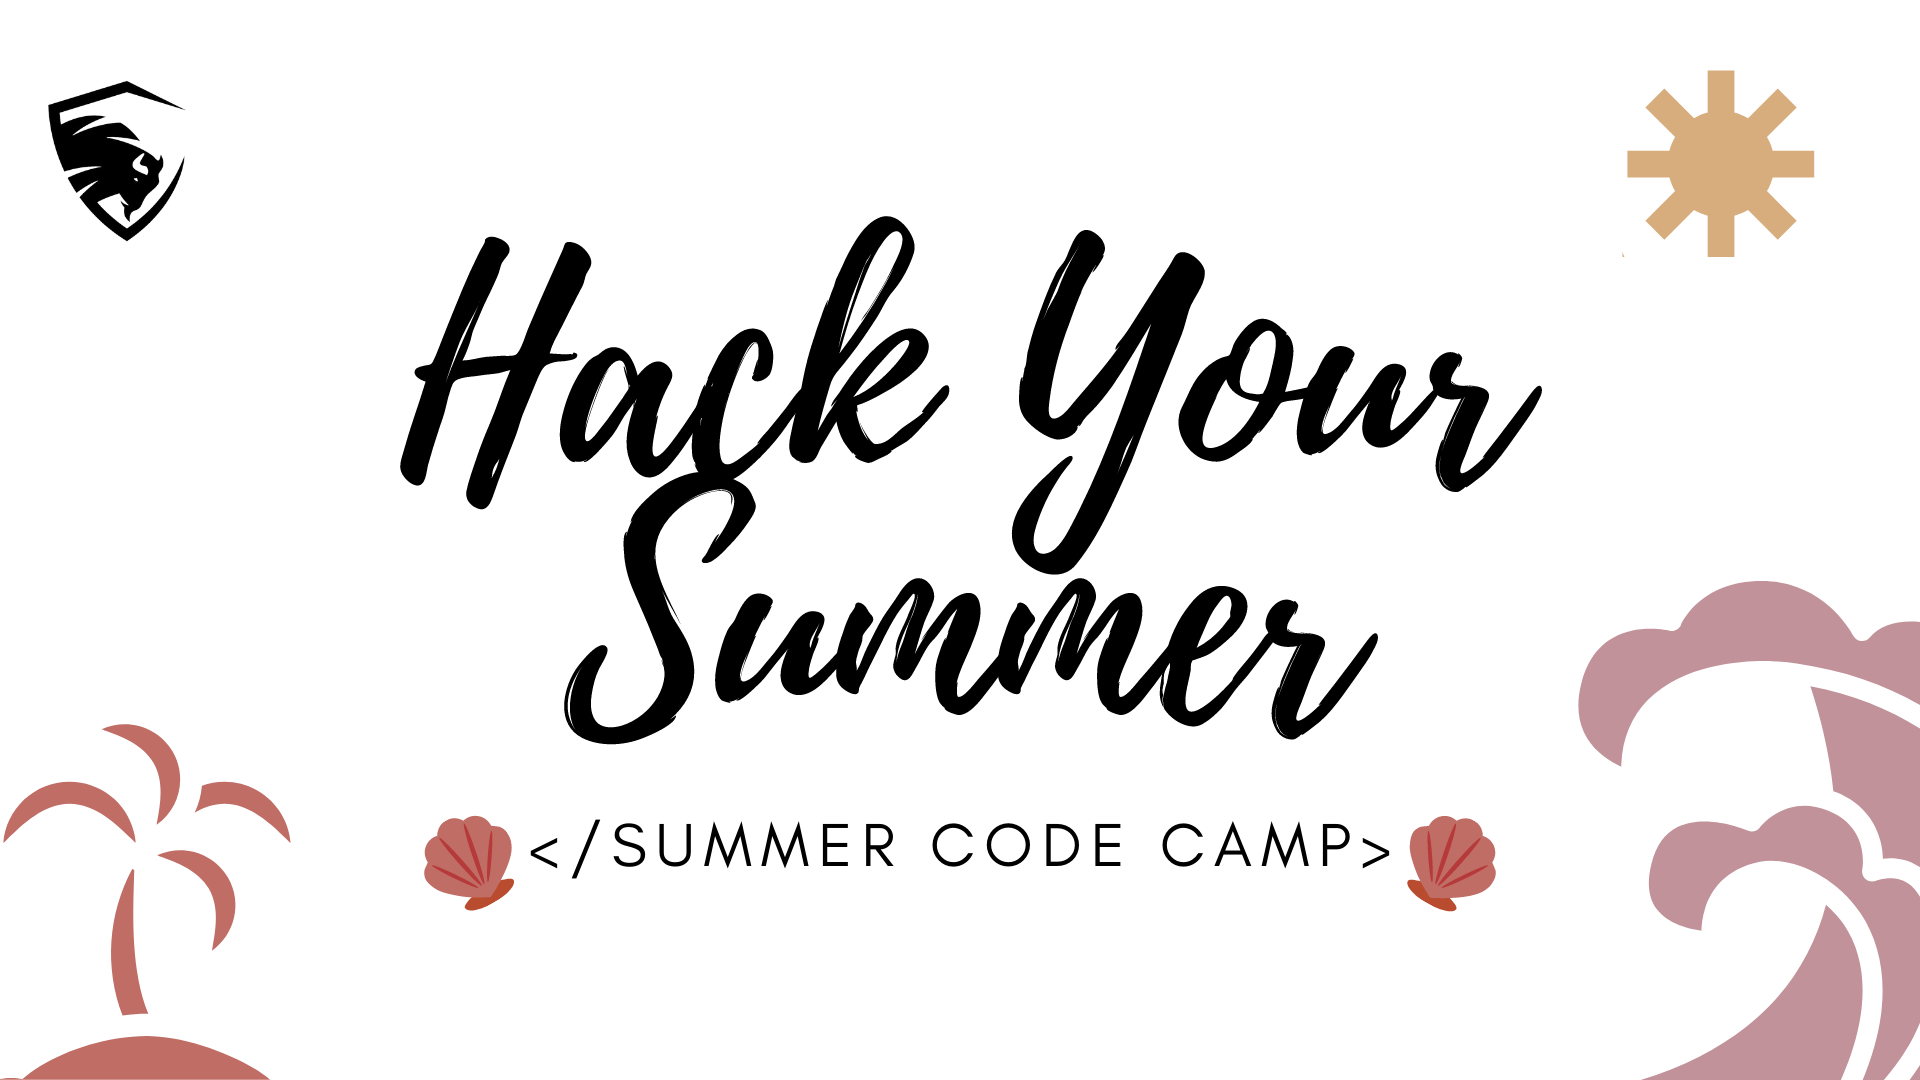 Hack your summer learning new technologies and buildig an app with your team!